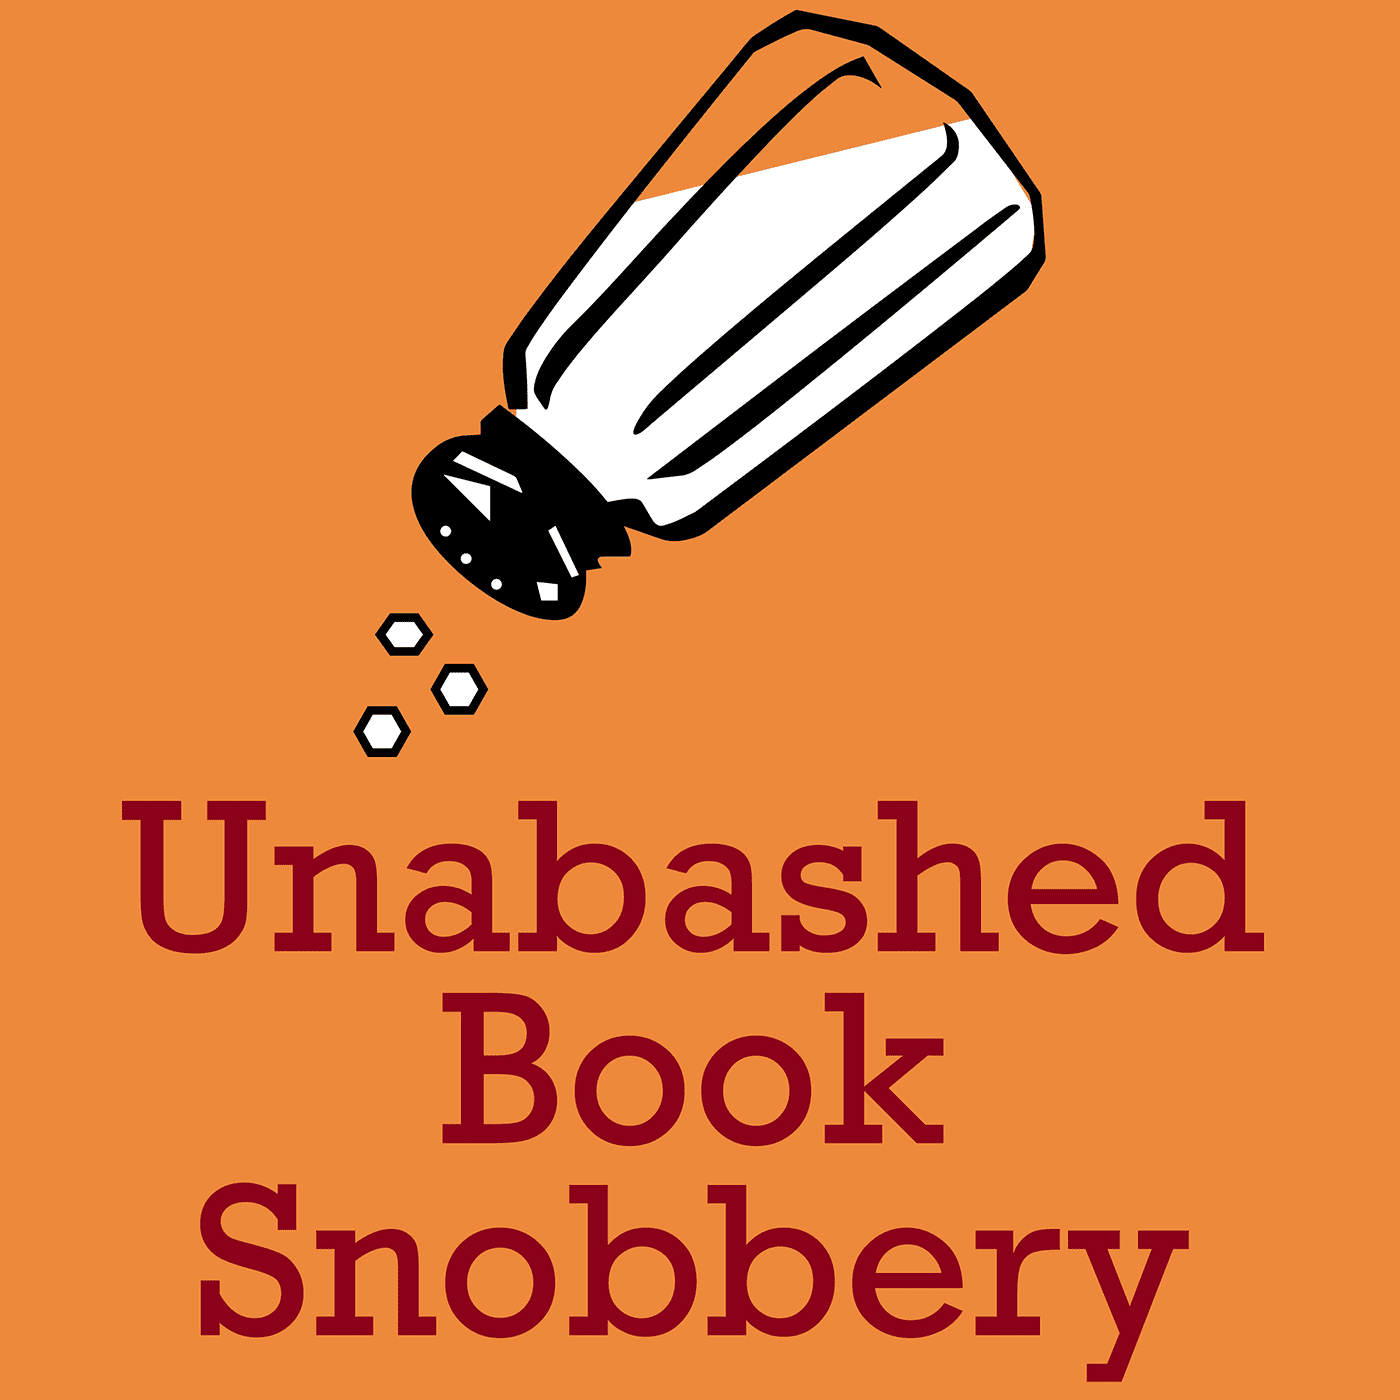 unabashed book snobbery logo 1400